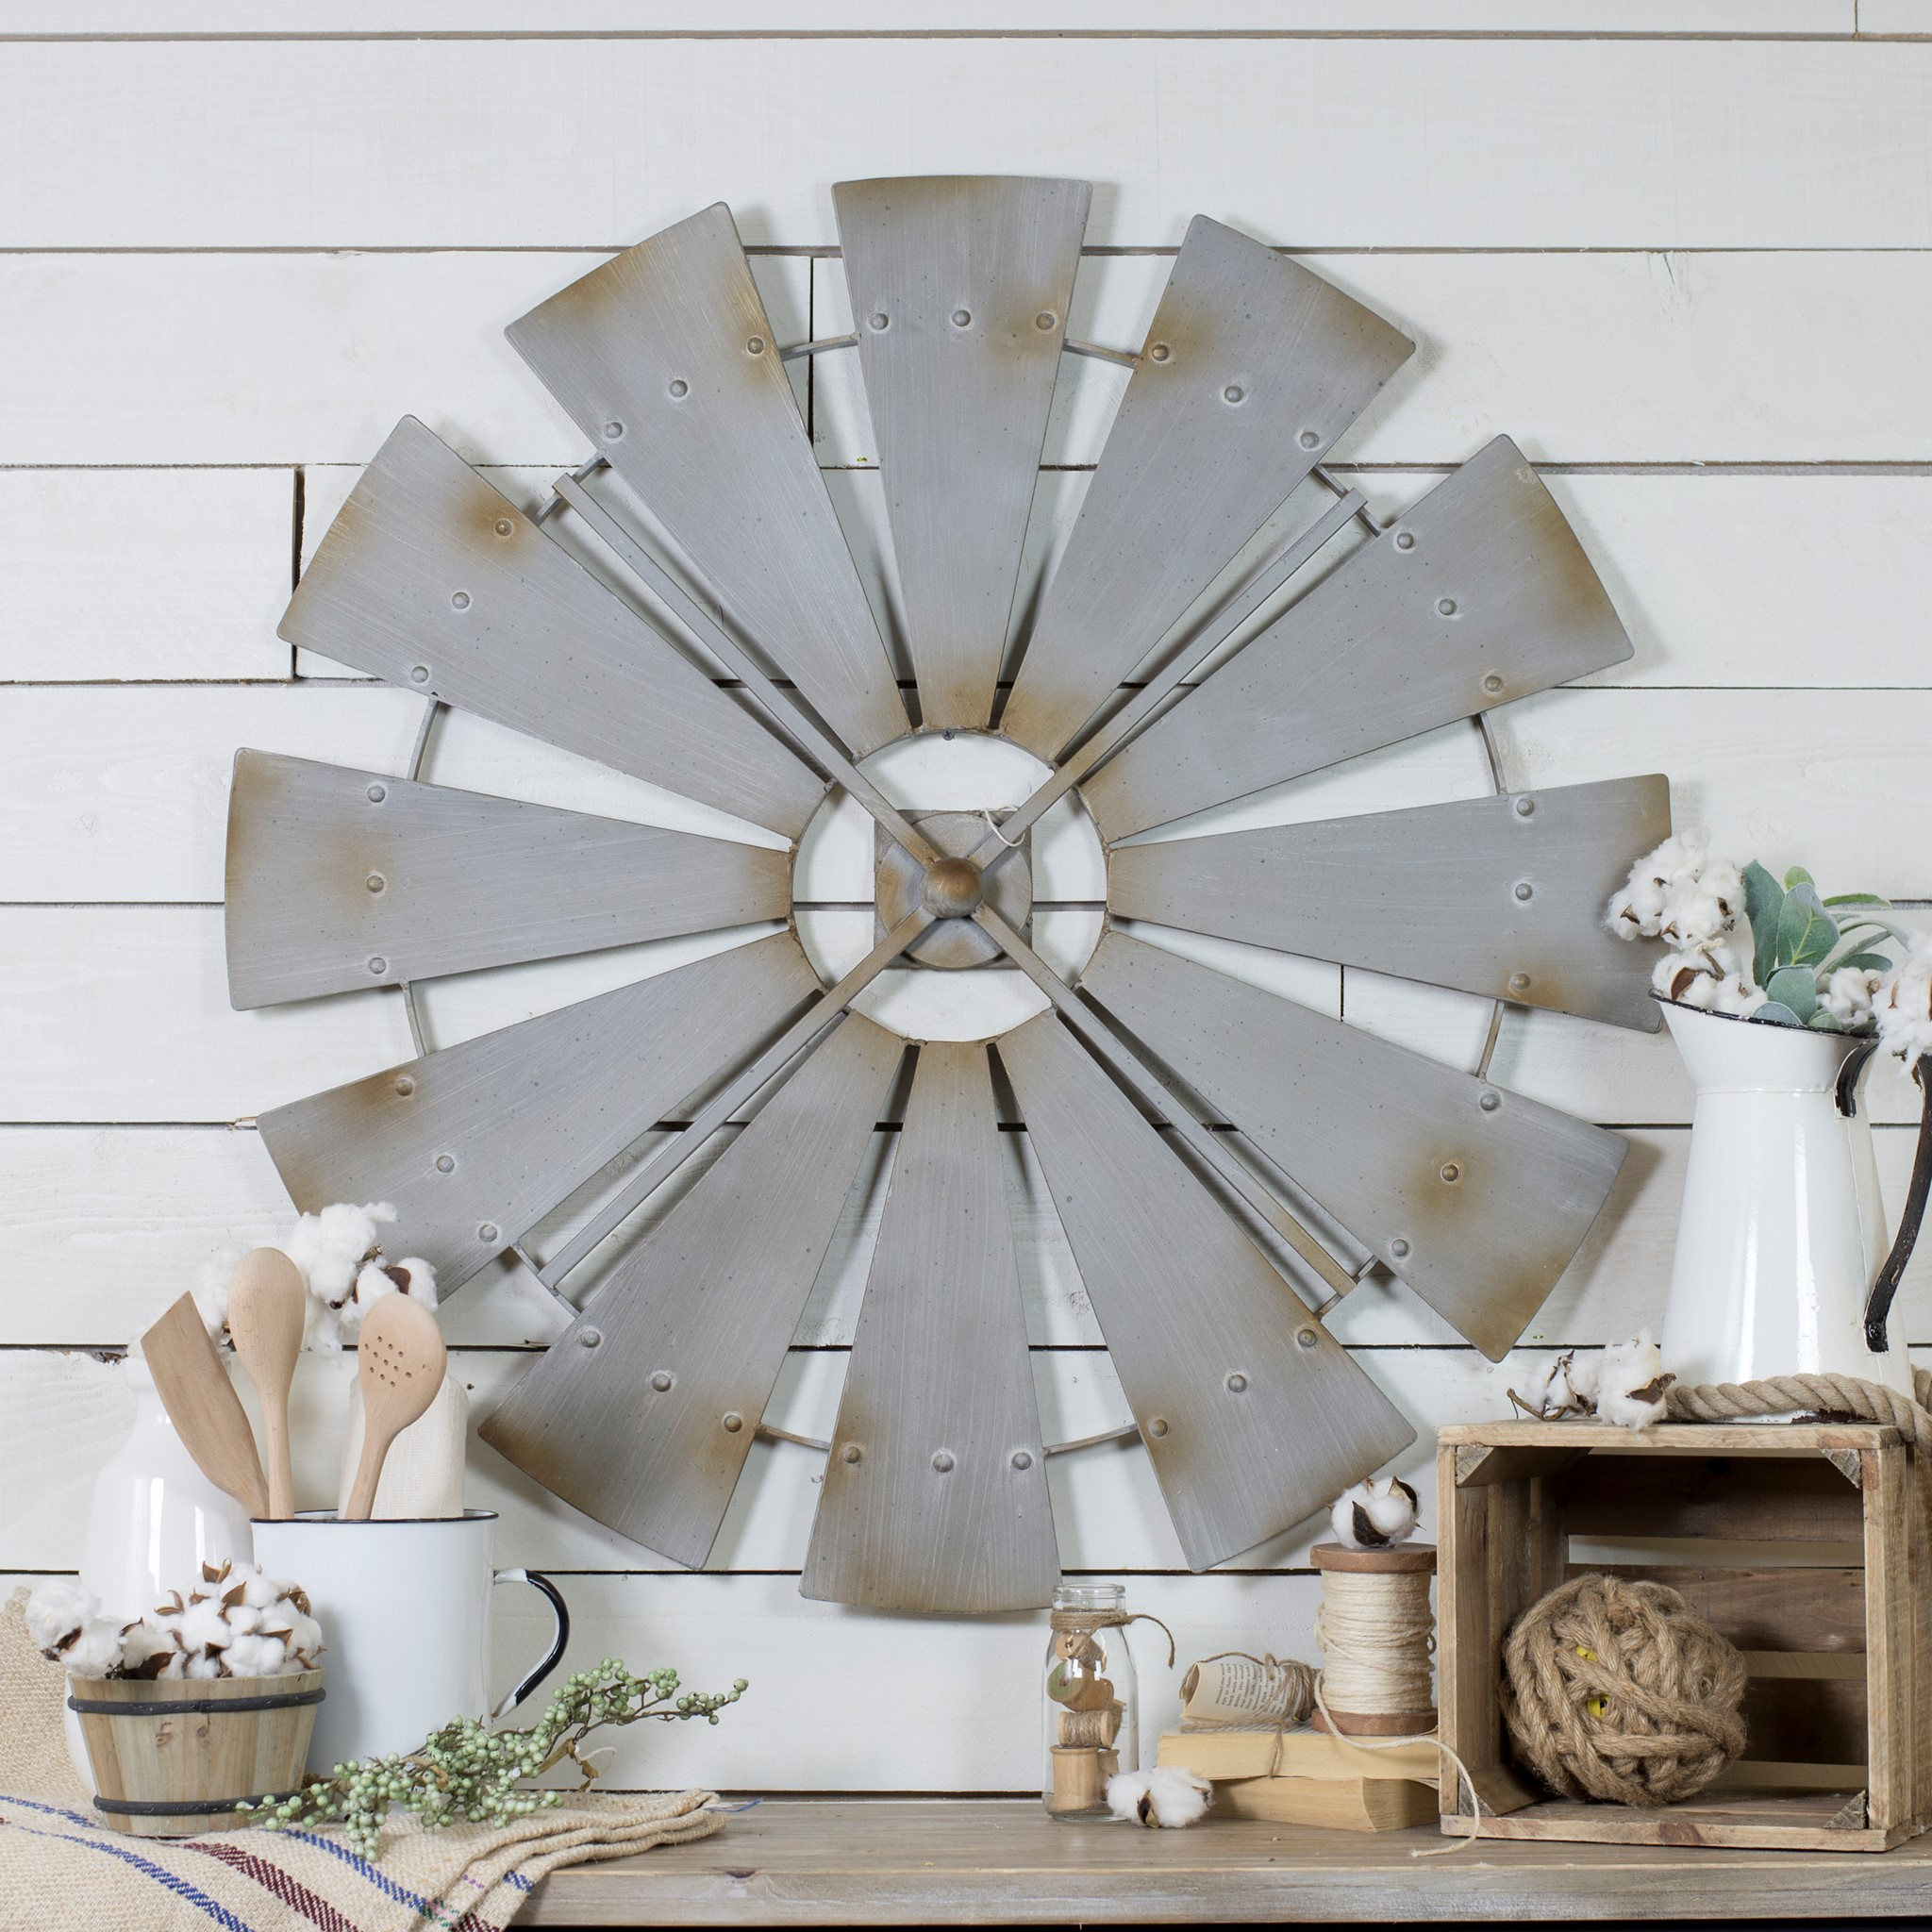 Vip international fh1057 farmhouse windmill wall decor amipublicfo Gallery